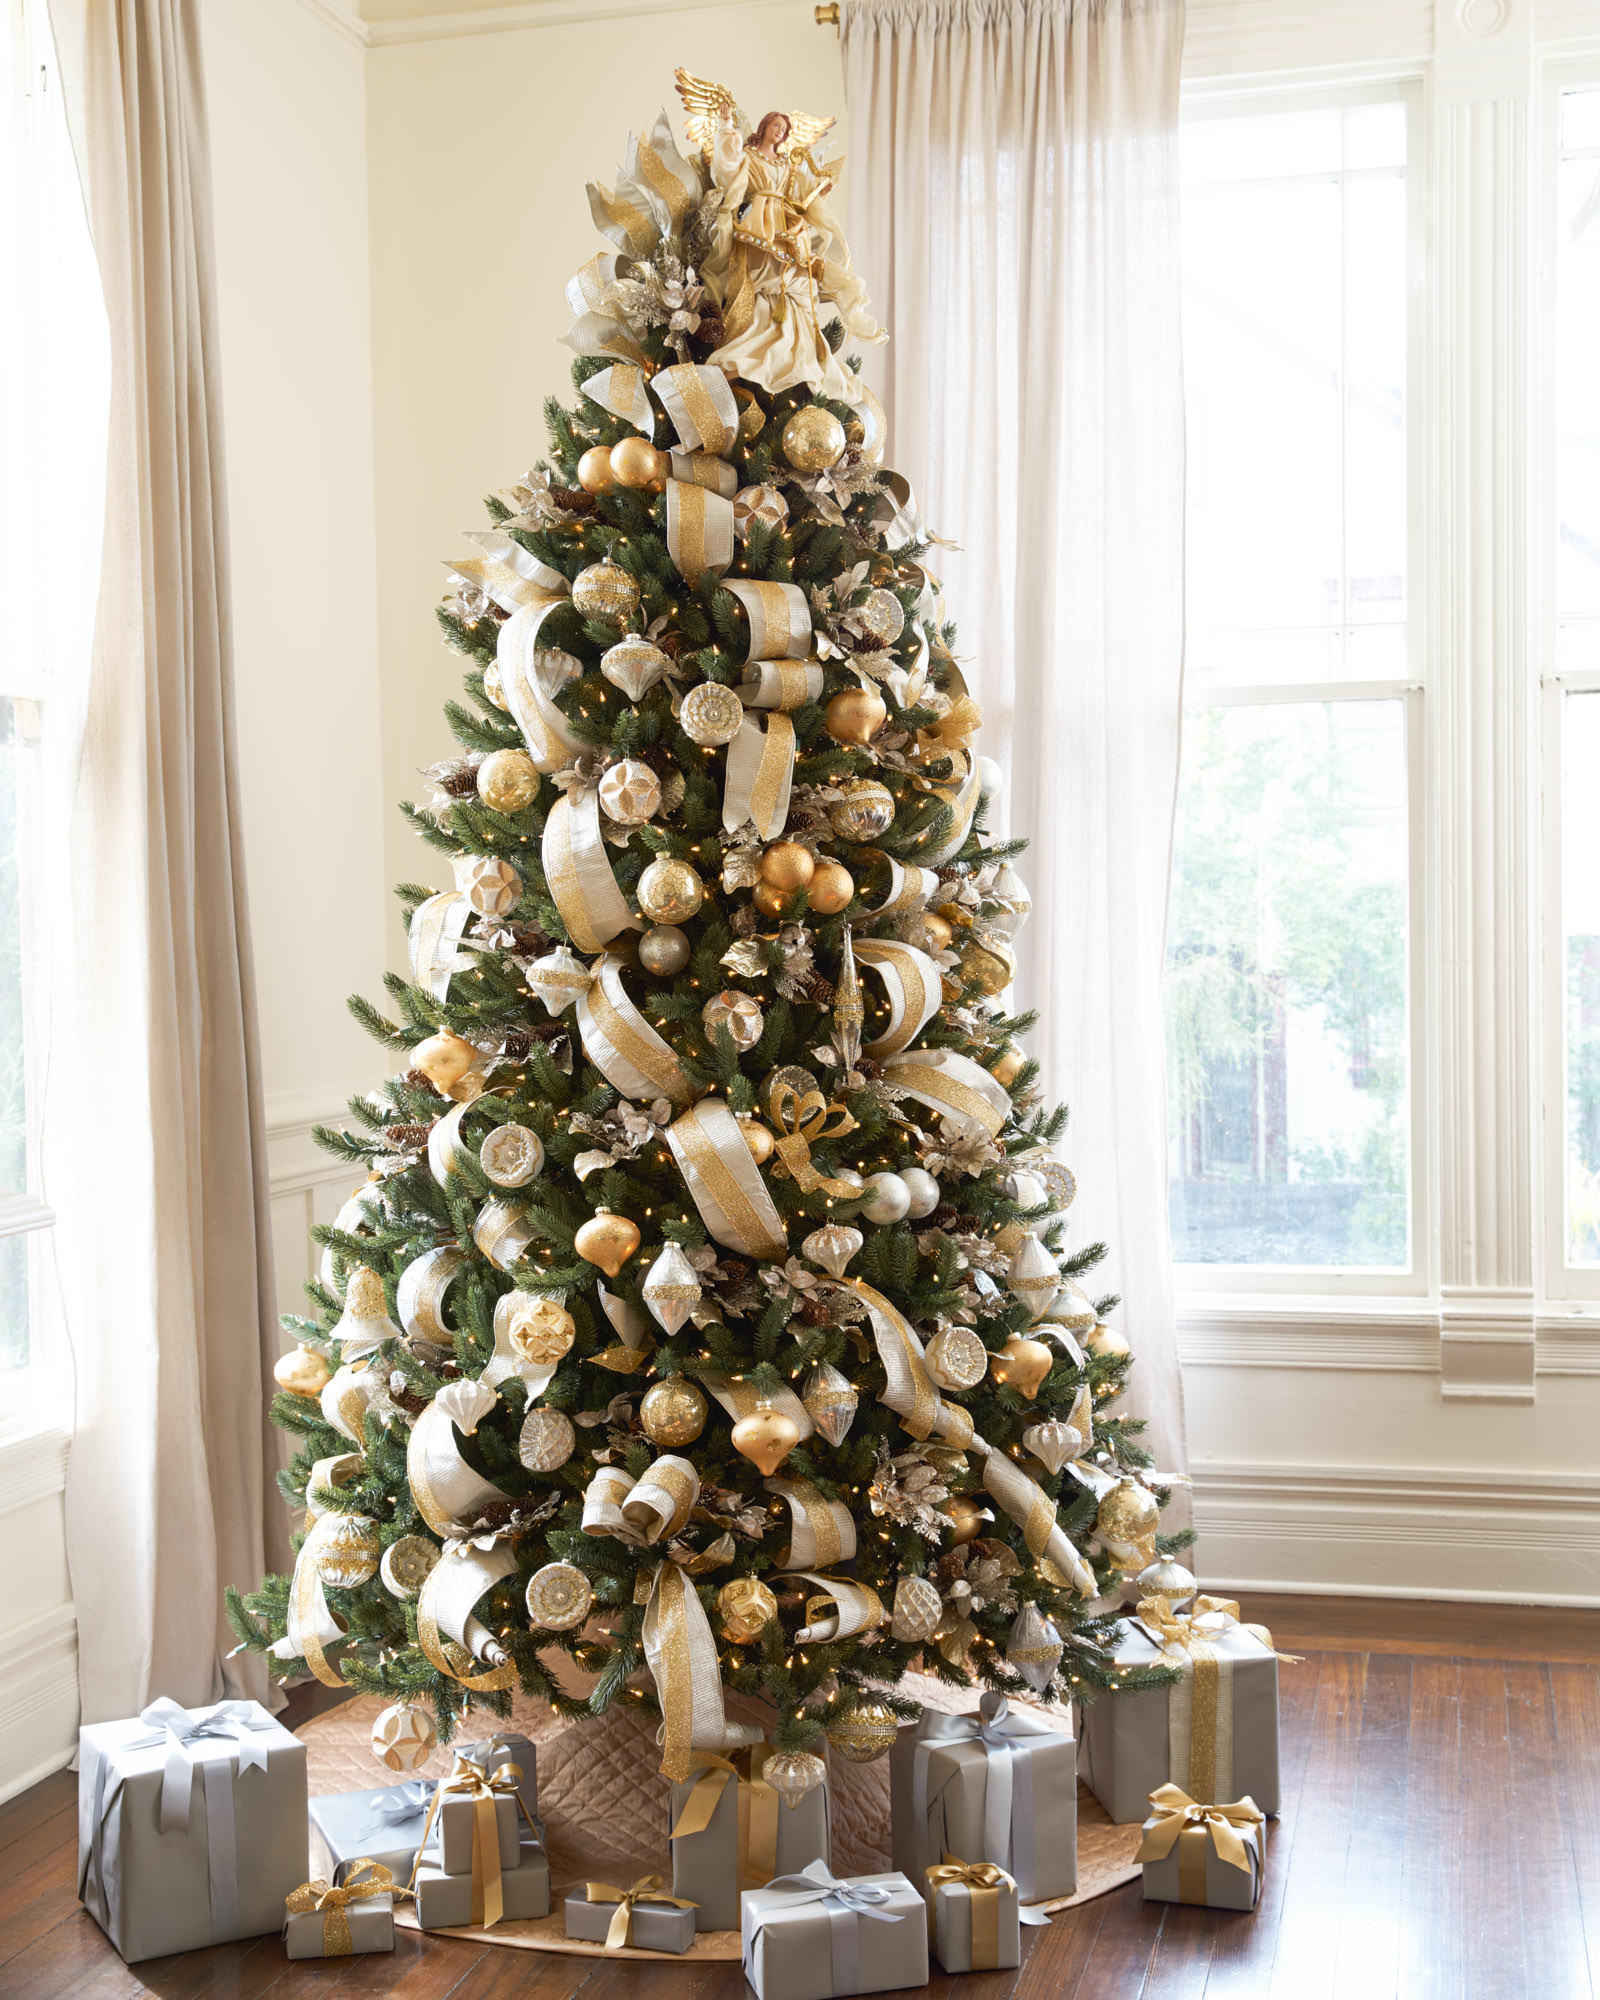 Awesome Christmas Tree Decorations Gold and Silver Christmas Tree and Decorations Of Delightful 50 Pictures Christmas Tree and Decorations